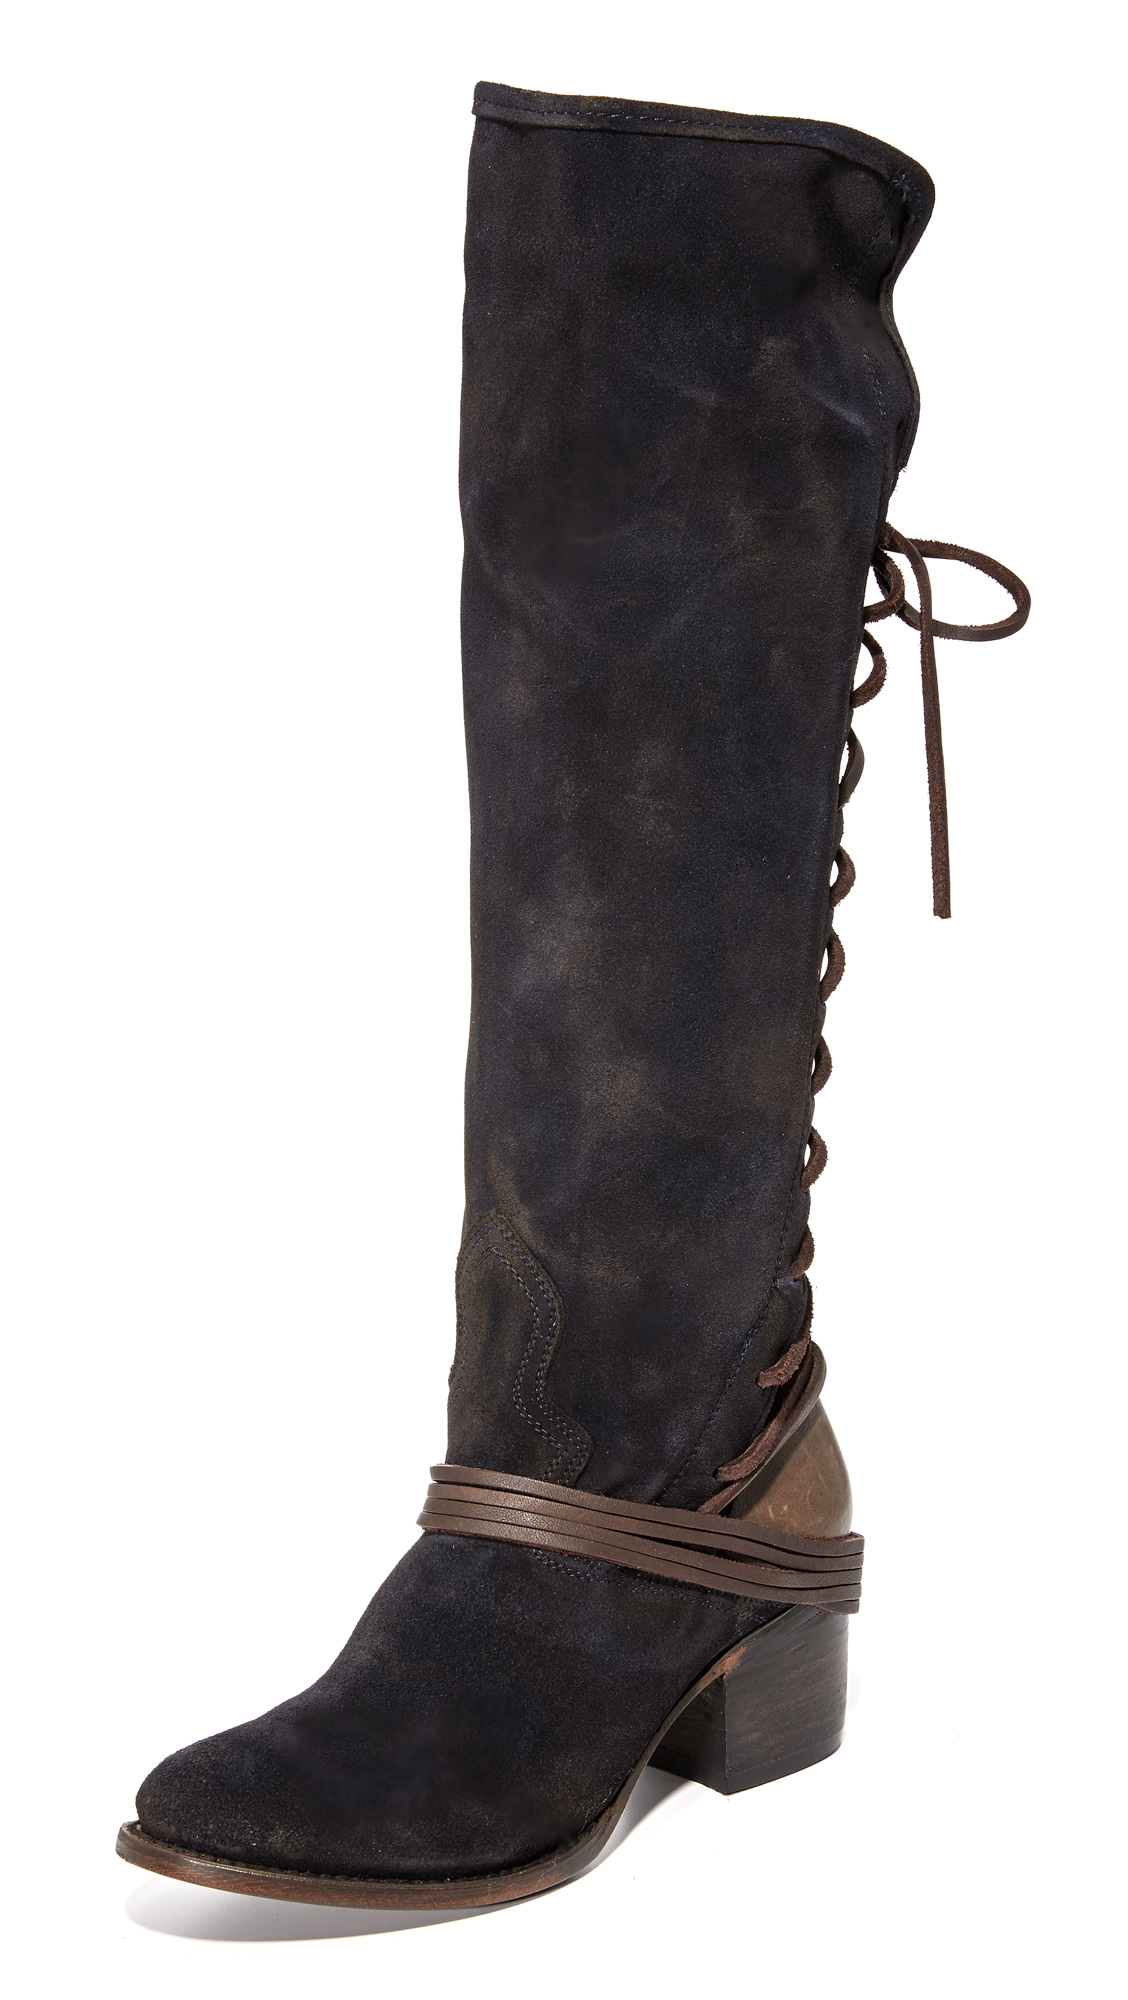 Freebird By Steven Coal Tall Boots - Navy